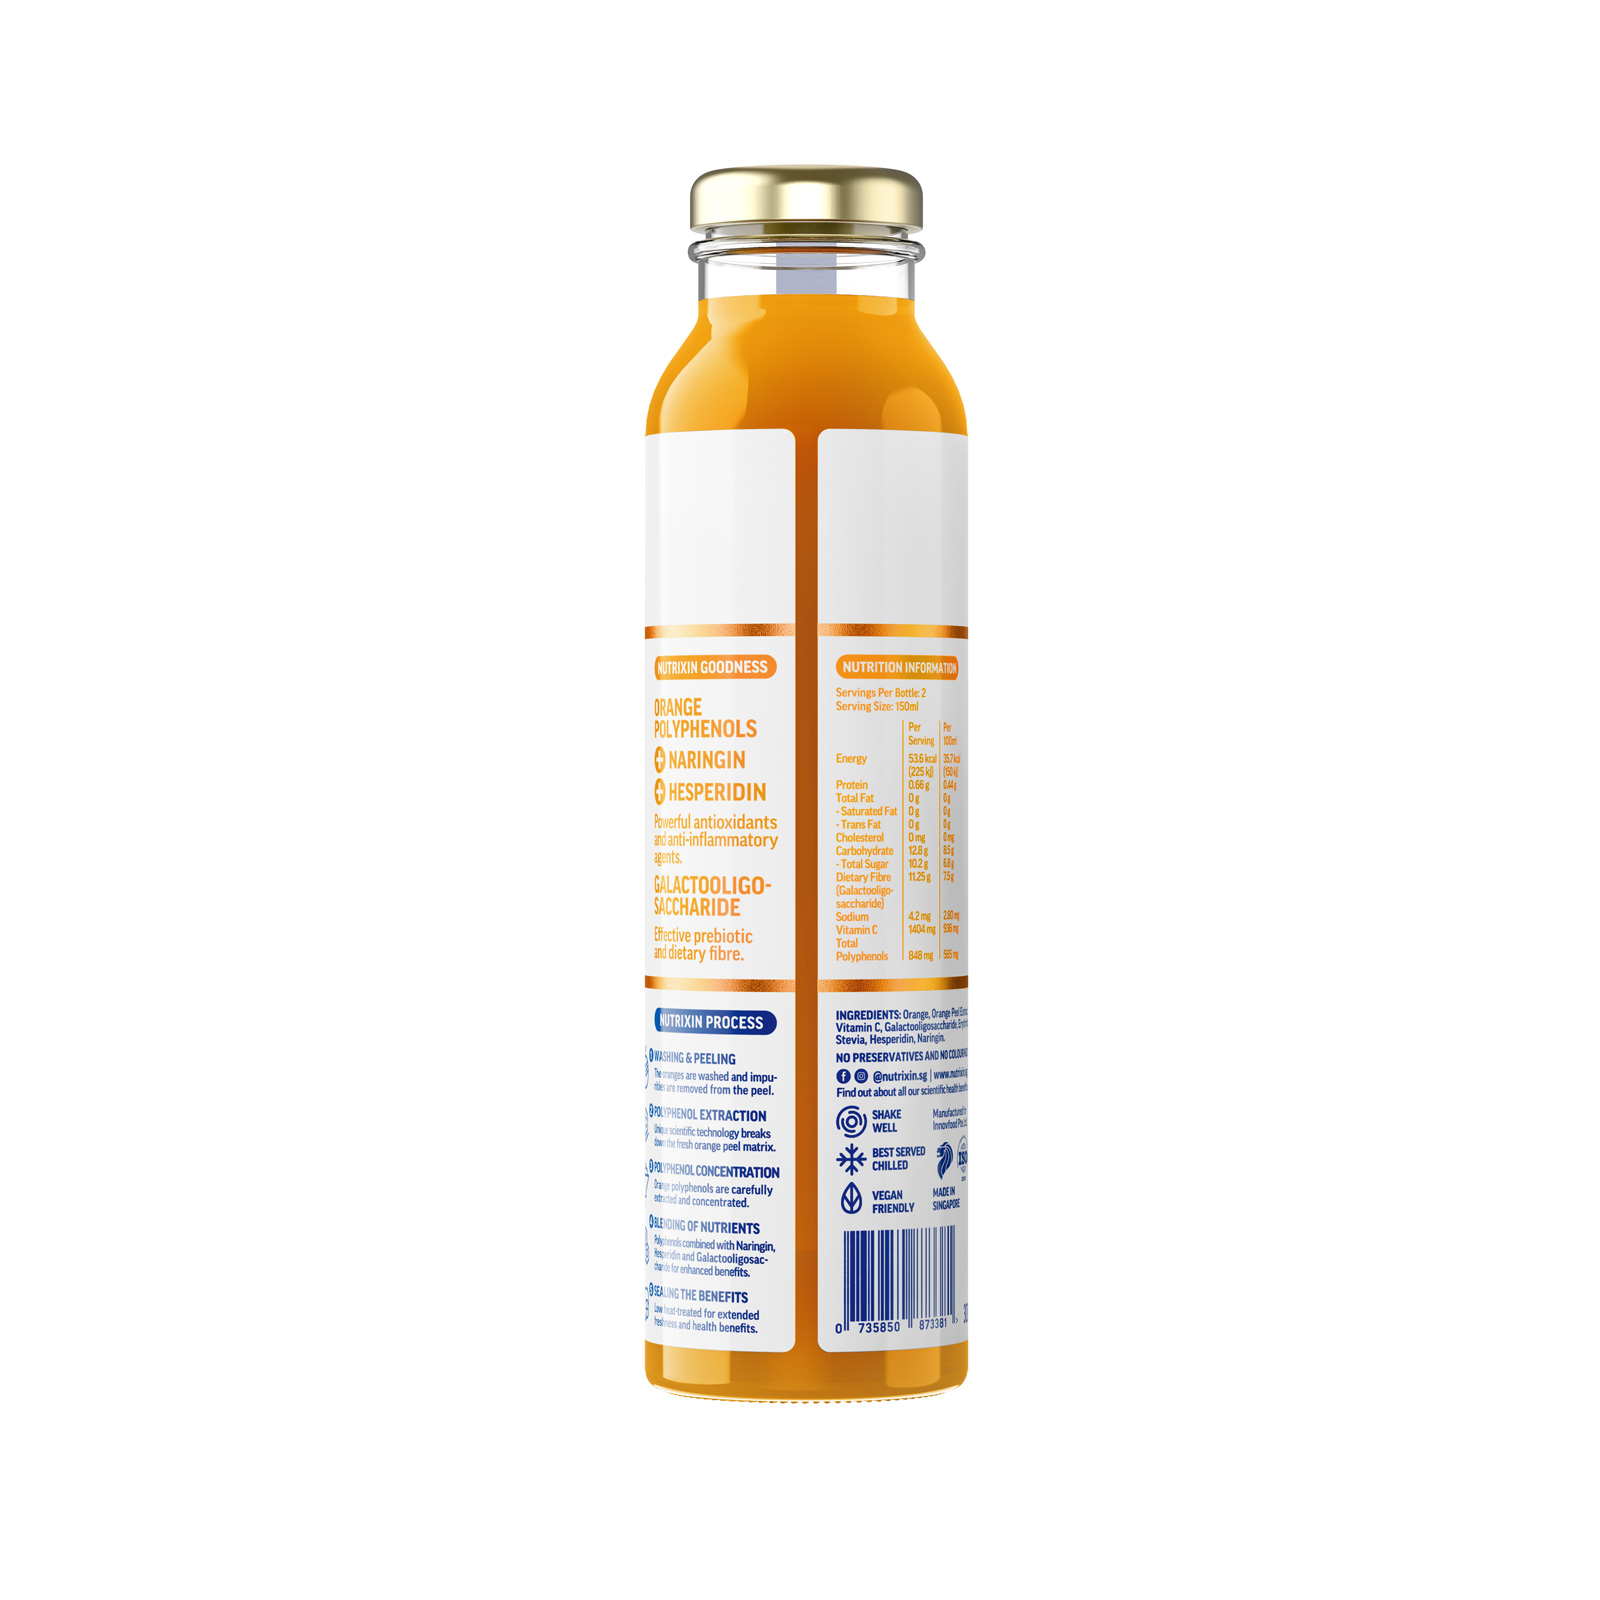 ORANGE PEEL ESSENCE